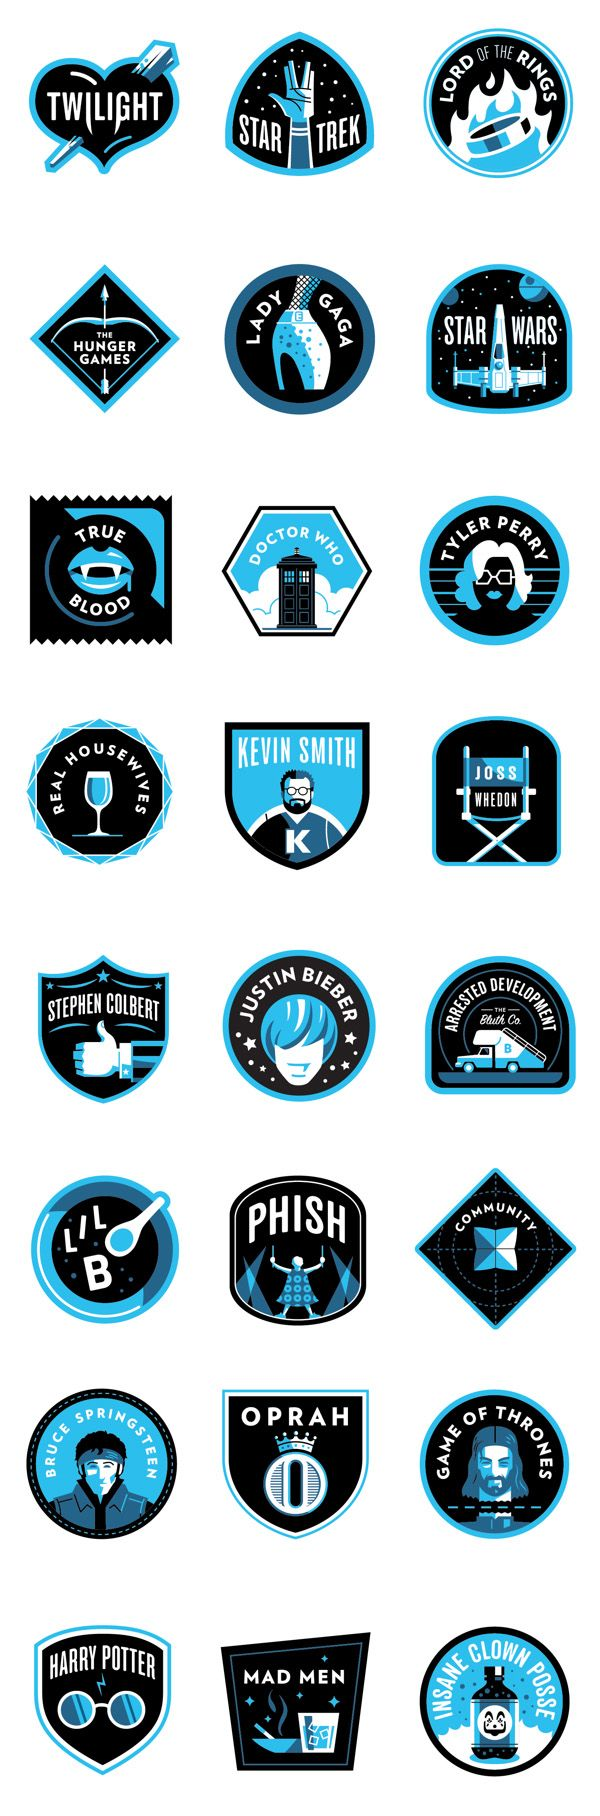 A series of 26 badges for the Vulture[dot]com Most Devoted Fanbase series